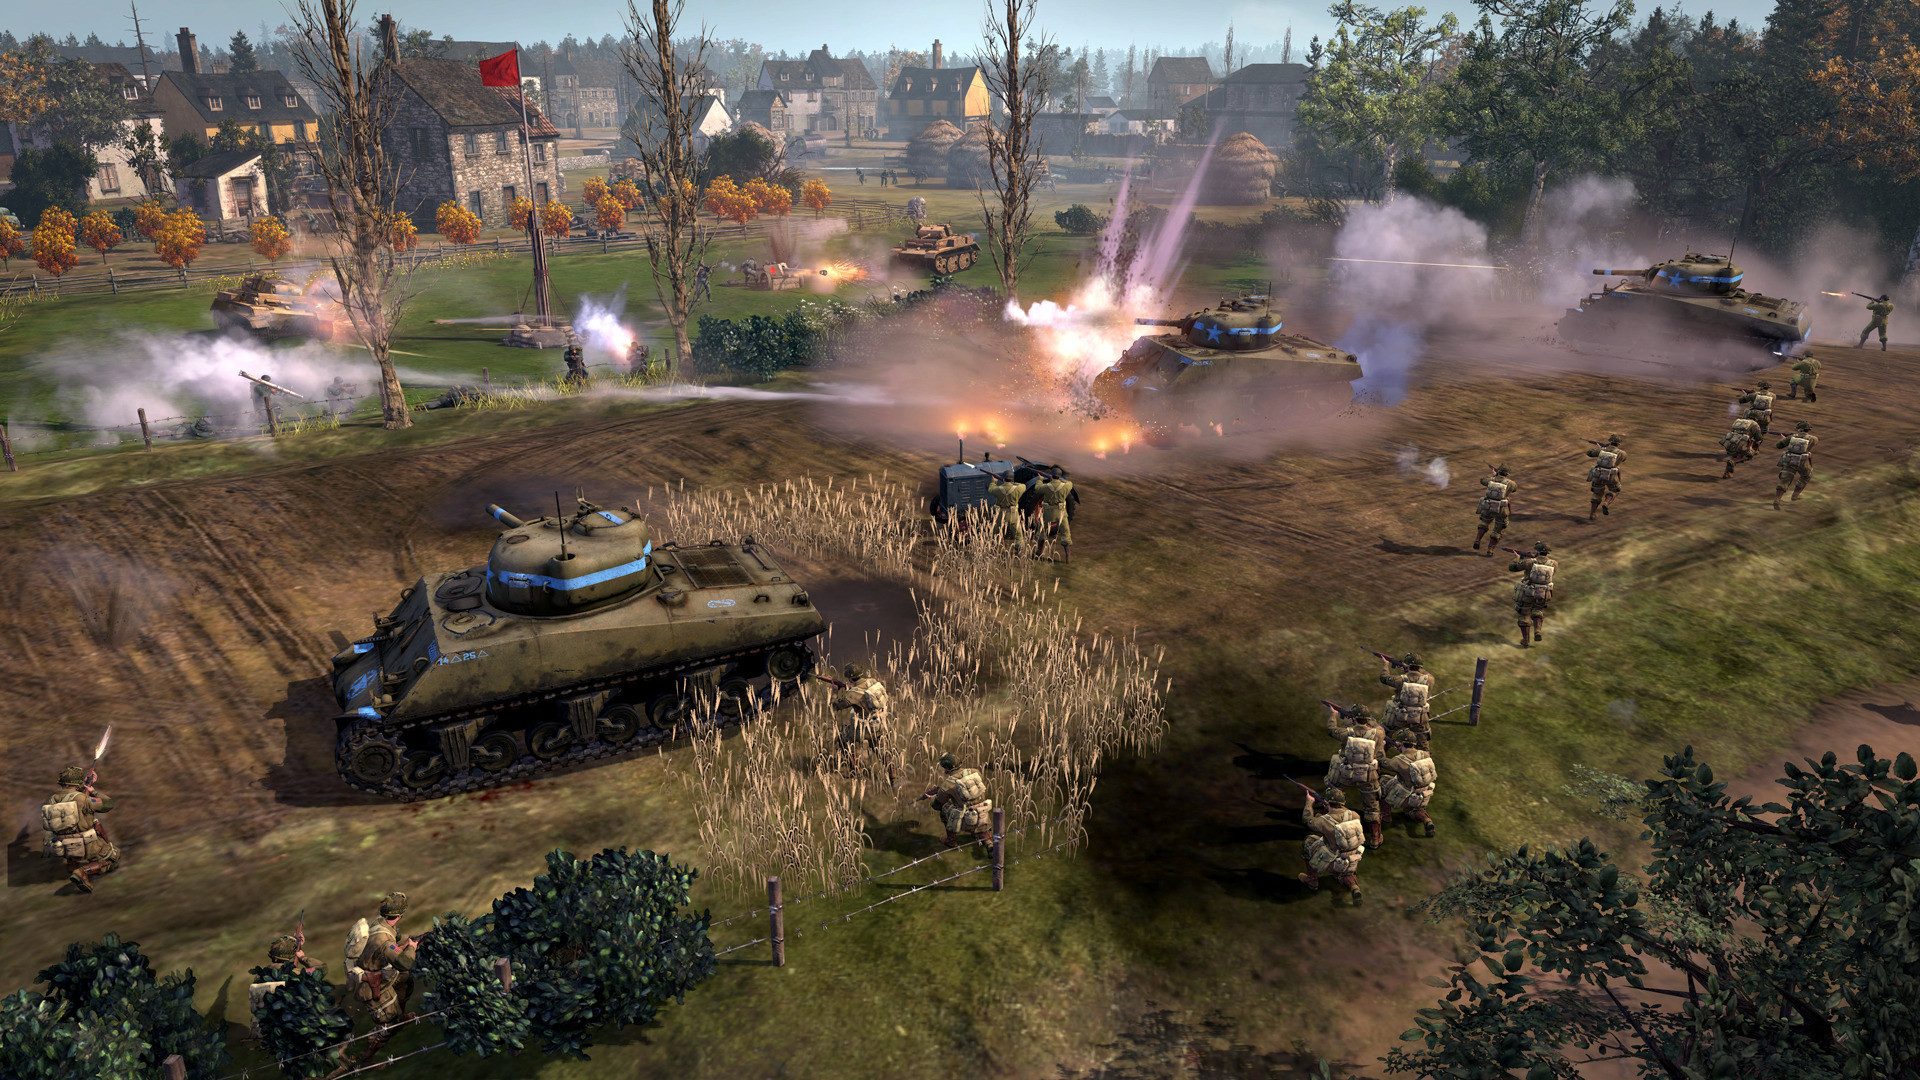 Army game online free to play